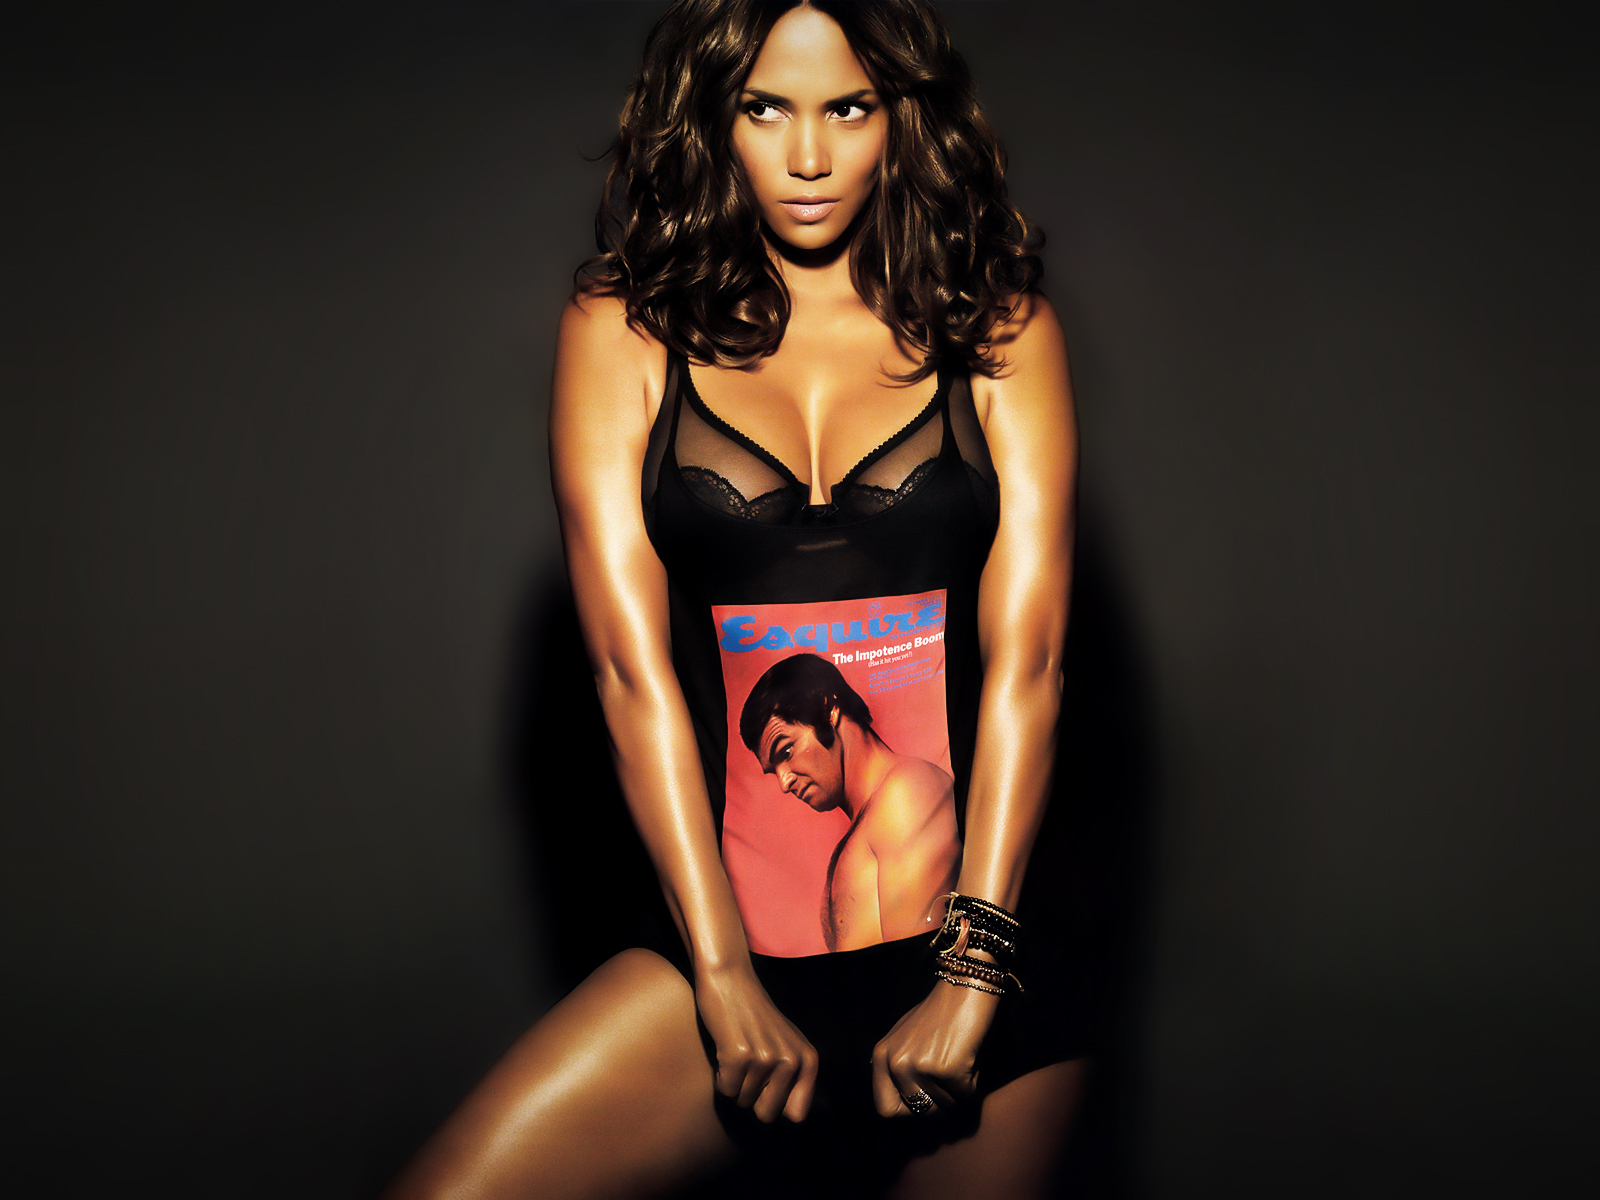 http://2.bp.blogspot.com/-y5yqeWFEtvA/TZFhUWZmhKI/AAAAAAAAACE/7c_CQVgdODY/s1600/beautiful_halle_berry_sexy_in_black-normal.jpg